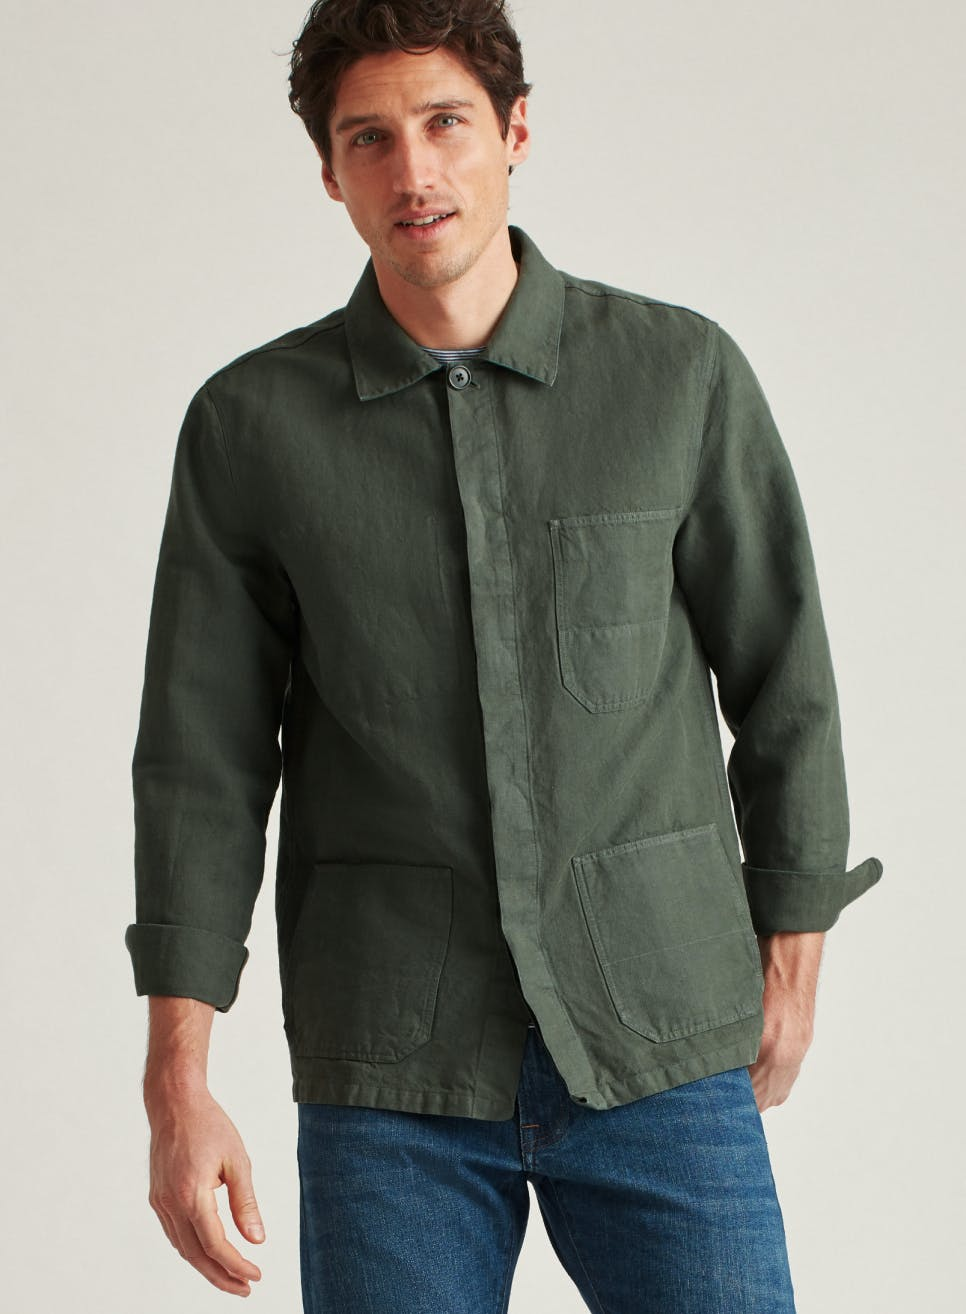 man wearing an olive colored casual shirt